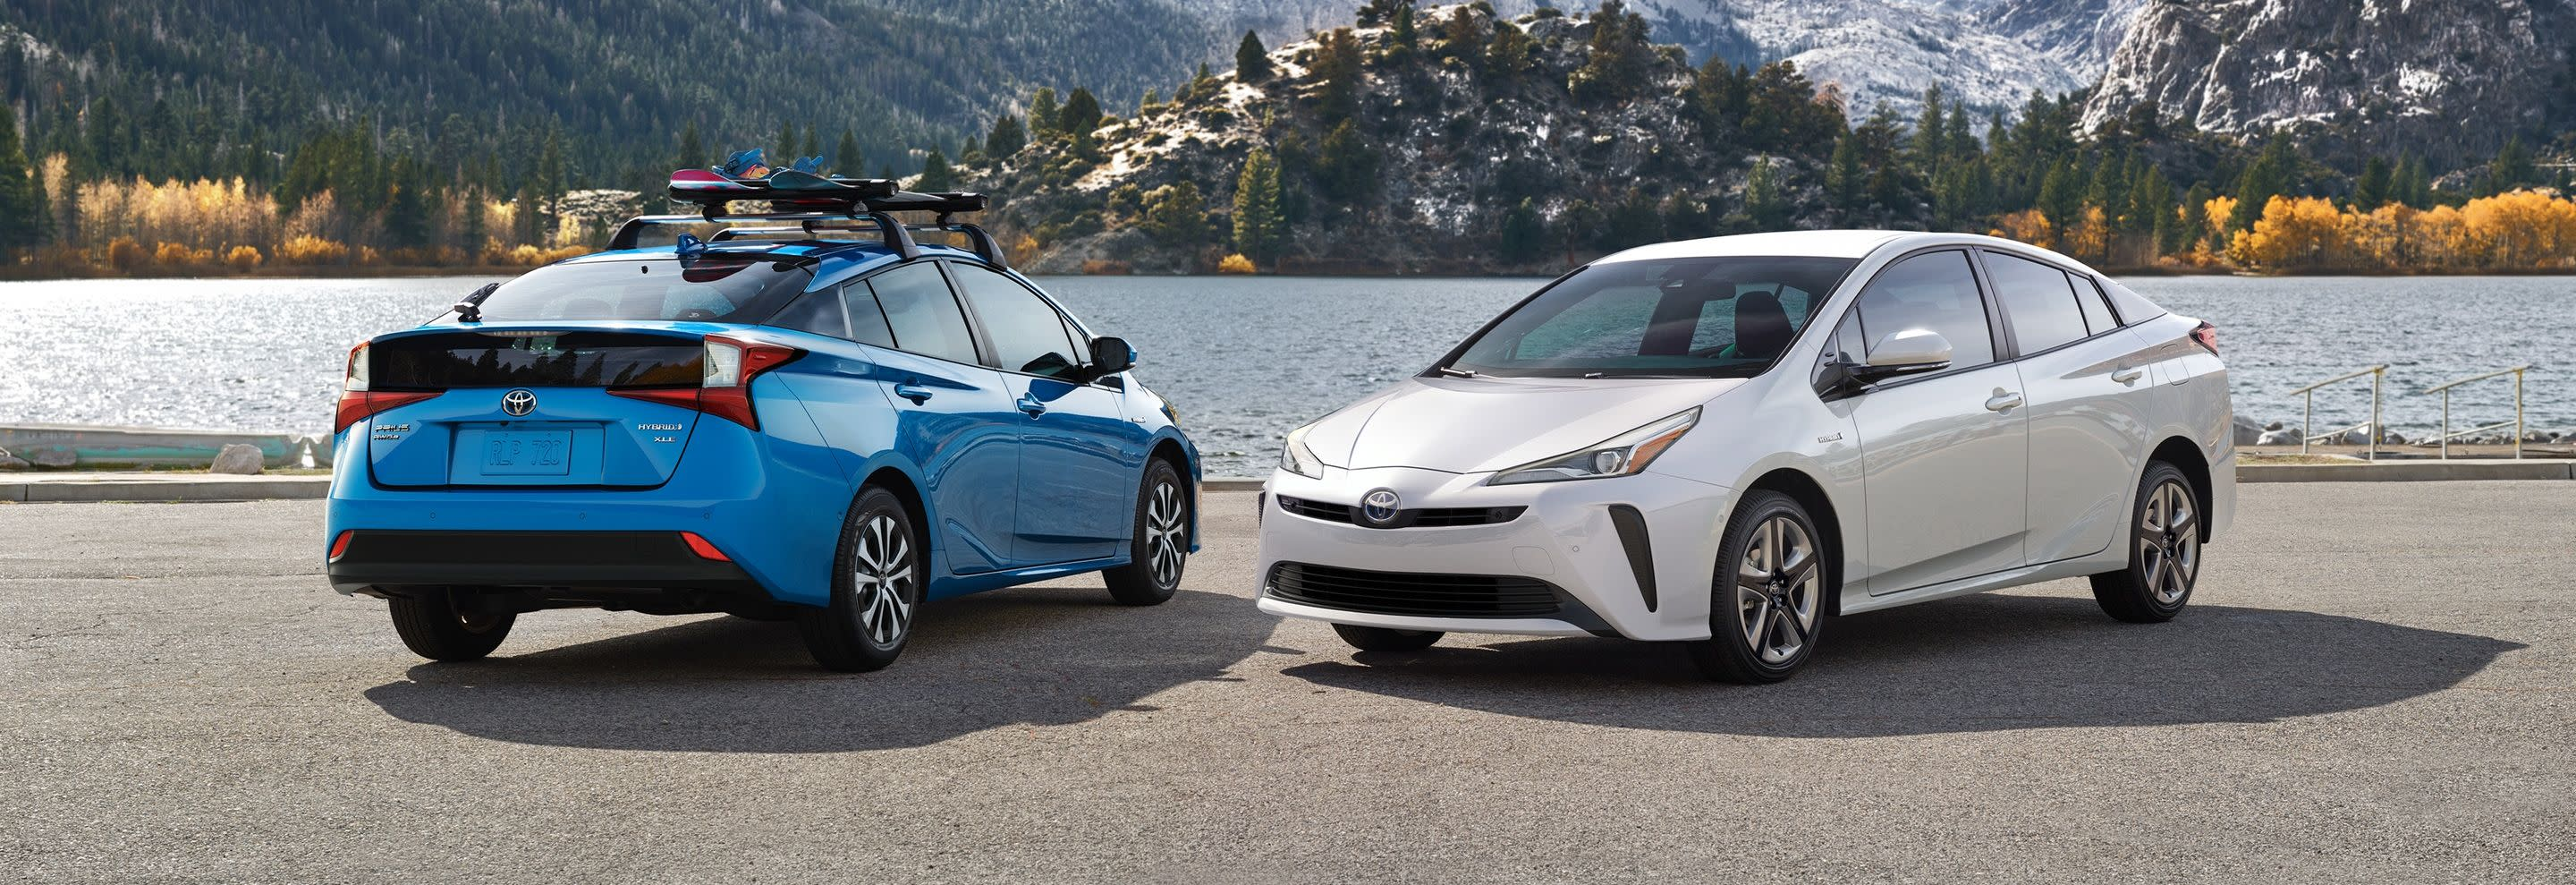 Which Toyotas Are Hybrids?